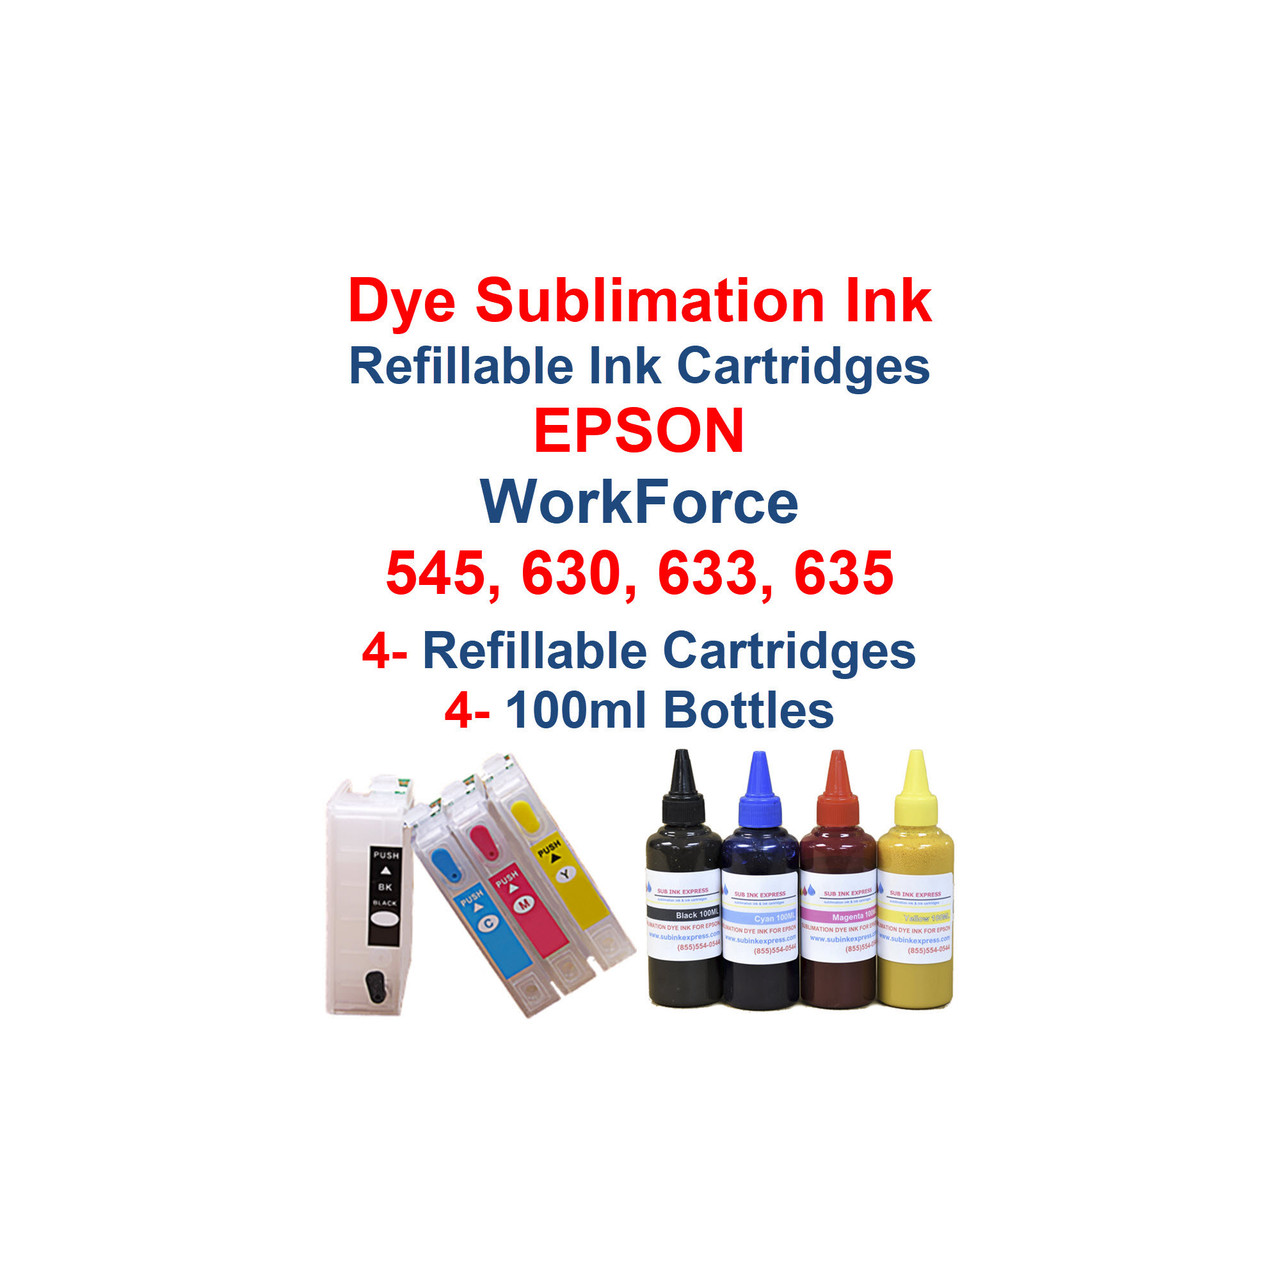 Dye Sublimation ink 100ml bottles , Refillable Ink Cartridges with auto reset chips for Epson WorkForce 545 630 633 635 printers  Compatible with : Epson WorkForce 545 printer Epson WorkForce 630 printer Epson WorkForce 633 printer Epson WorkForce 635 printer  Package includes:  4- 100ml bottles Dye Sublimation ink - 1 Black, 1 Cyan, 1 Magenta, 1 Yellow 4- Refillable Ink Cartridges with auto reset chips  OEM cartridge number: T127120, T127220, T127320, T127420 4- Syringes for filling cartridges  >> Our Refillable Cartridges have a Auto Reset Chip installed on them, no chip Resetter is needed  Dye Sublimation Ink  Heat Transfer printing  T-Shirts, Hats, Metal, Ceramic, Mugs, Plates, etc...  Works with all substrates    No extra software  No color profiles needed  >>> Los Angeles same day delivery available (Contact us for pricing) <<<